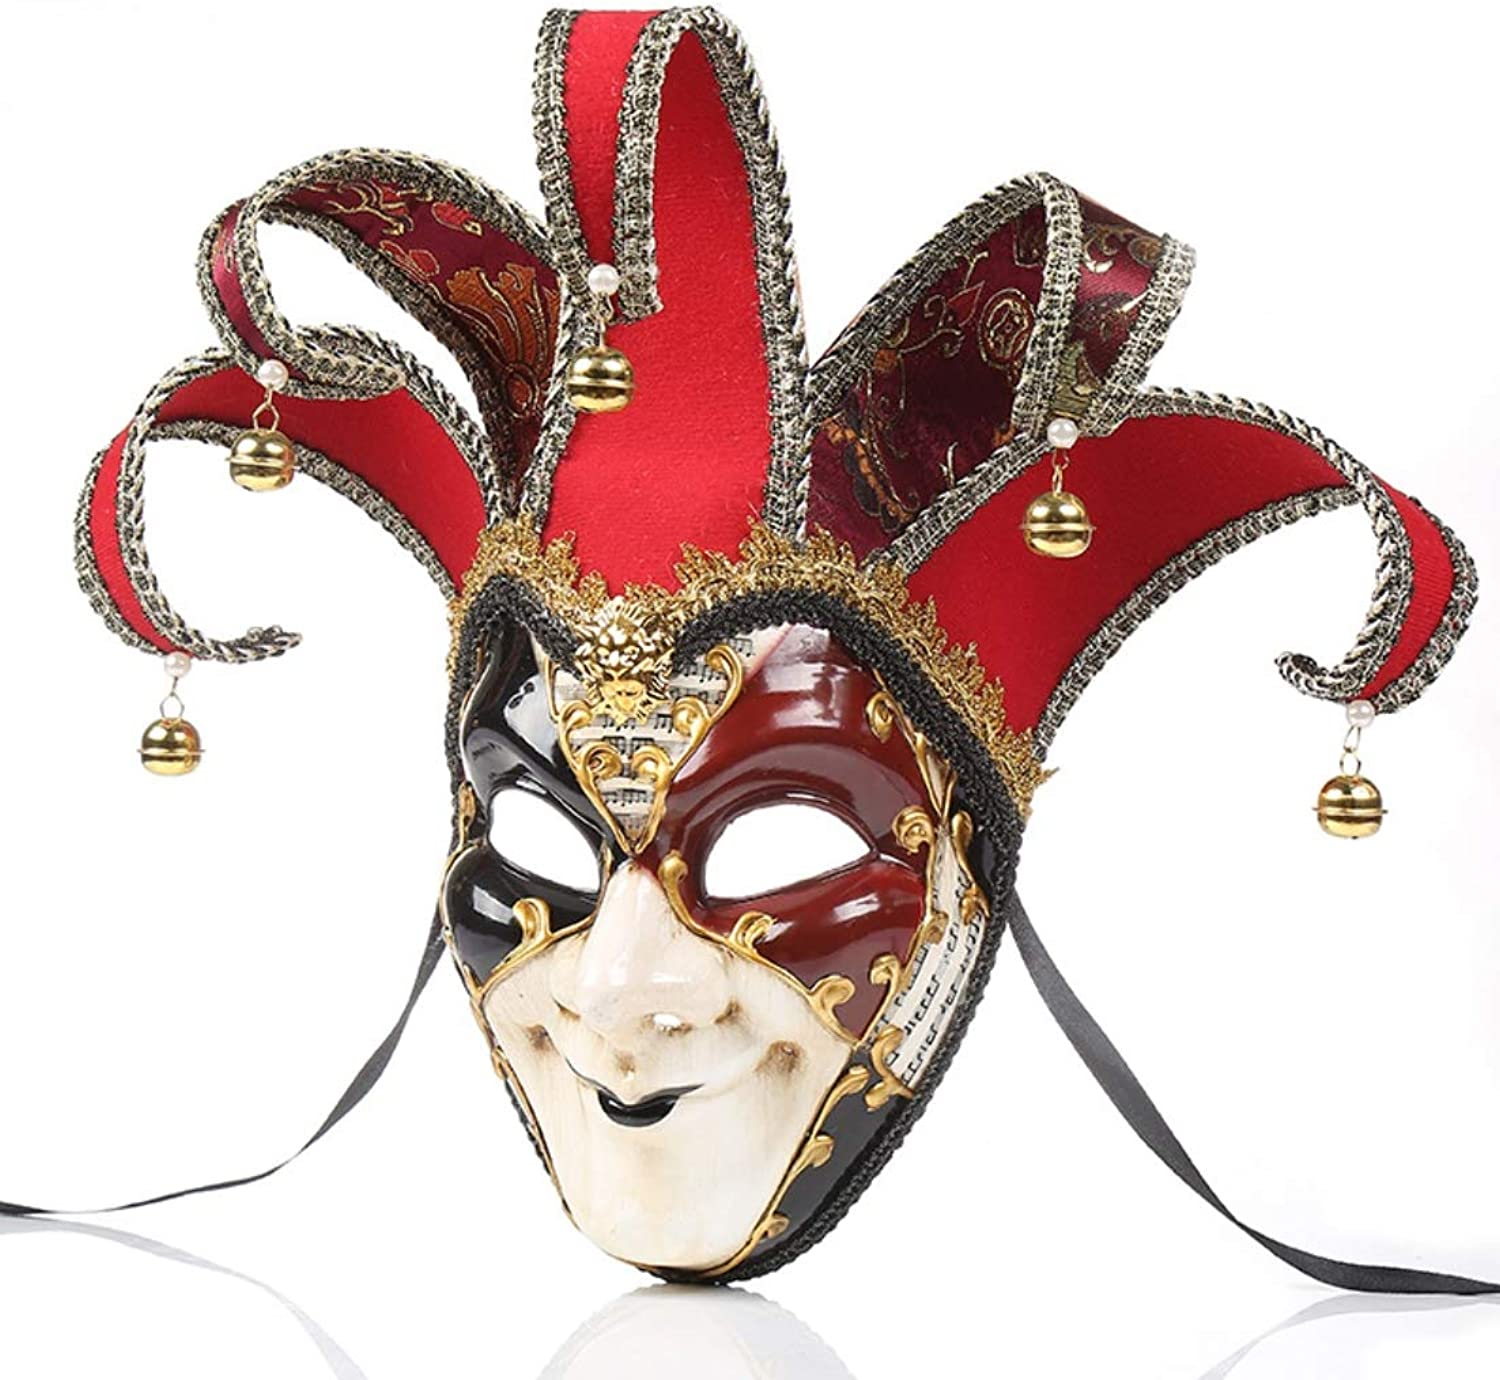 Roman Mask Men's Painted Dance Mask Available in Three colors Suitable for Masquerade Party Performance Festival Carnival, One Size